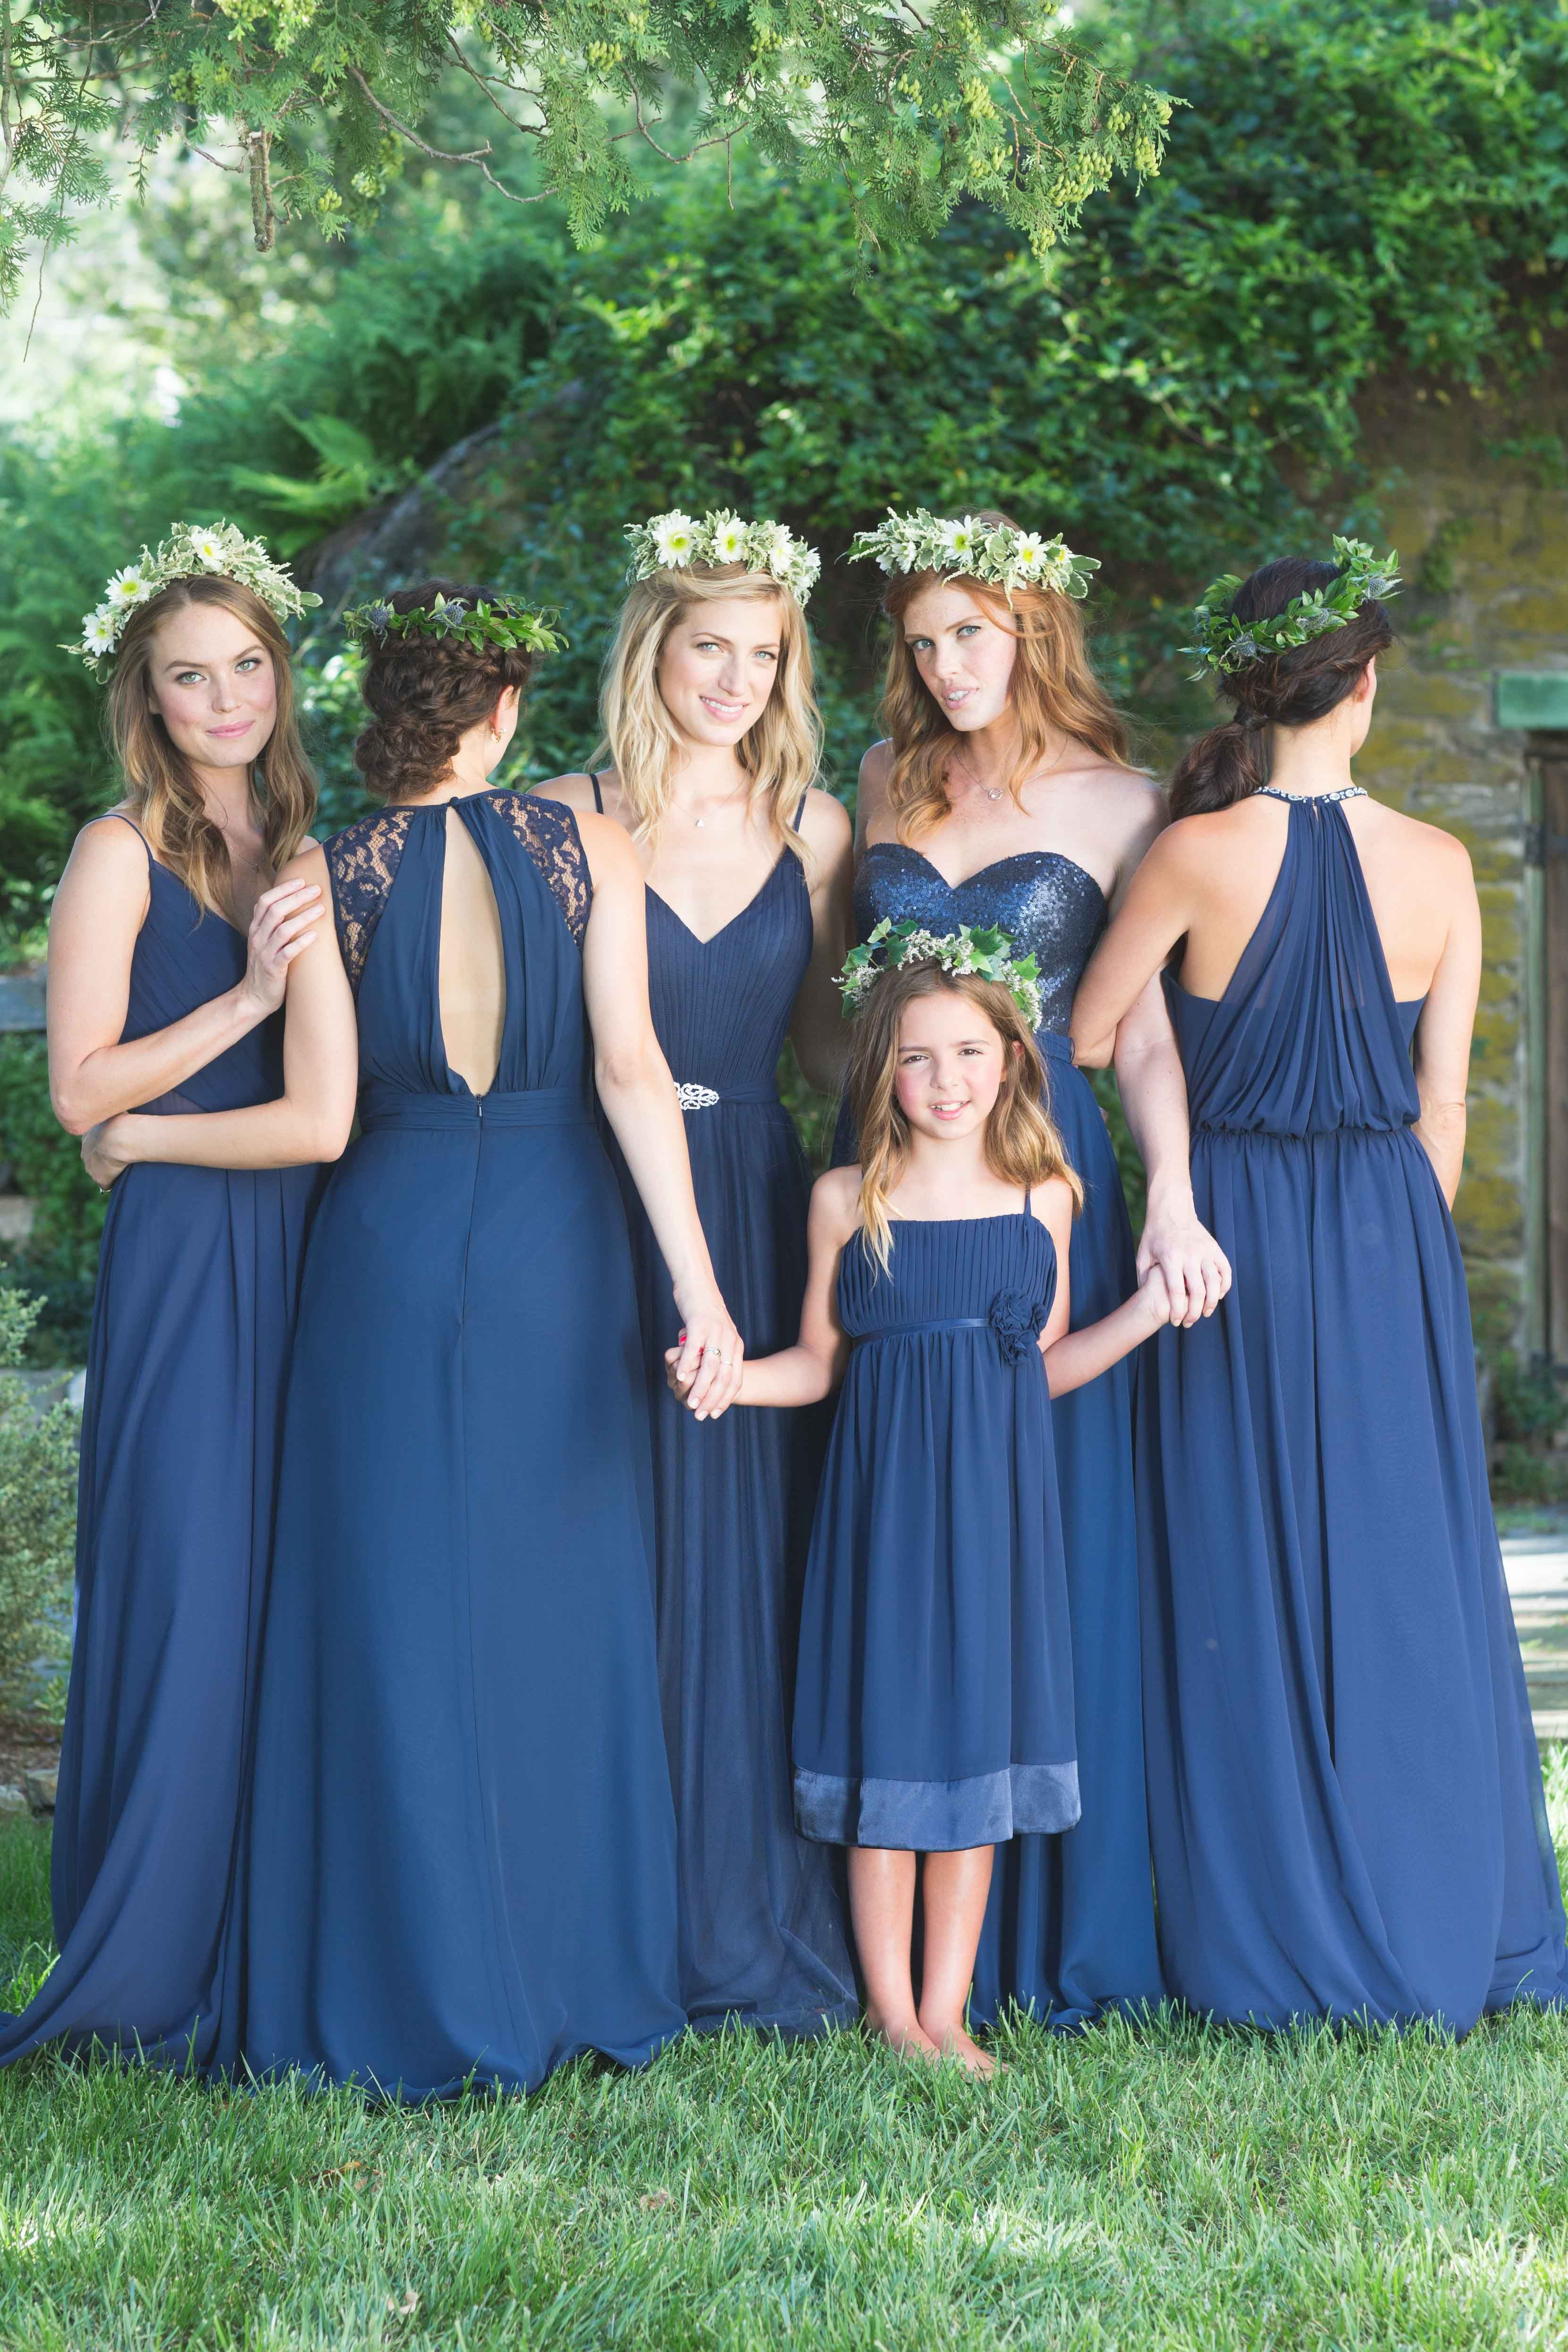 Add a little sparkle to your wedding photos with our new sequin add a little sparkle to your wedding photos with our new sequin bridesmaids dresses ombrellifo Choice Image